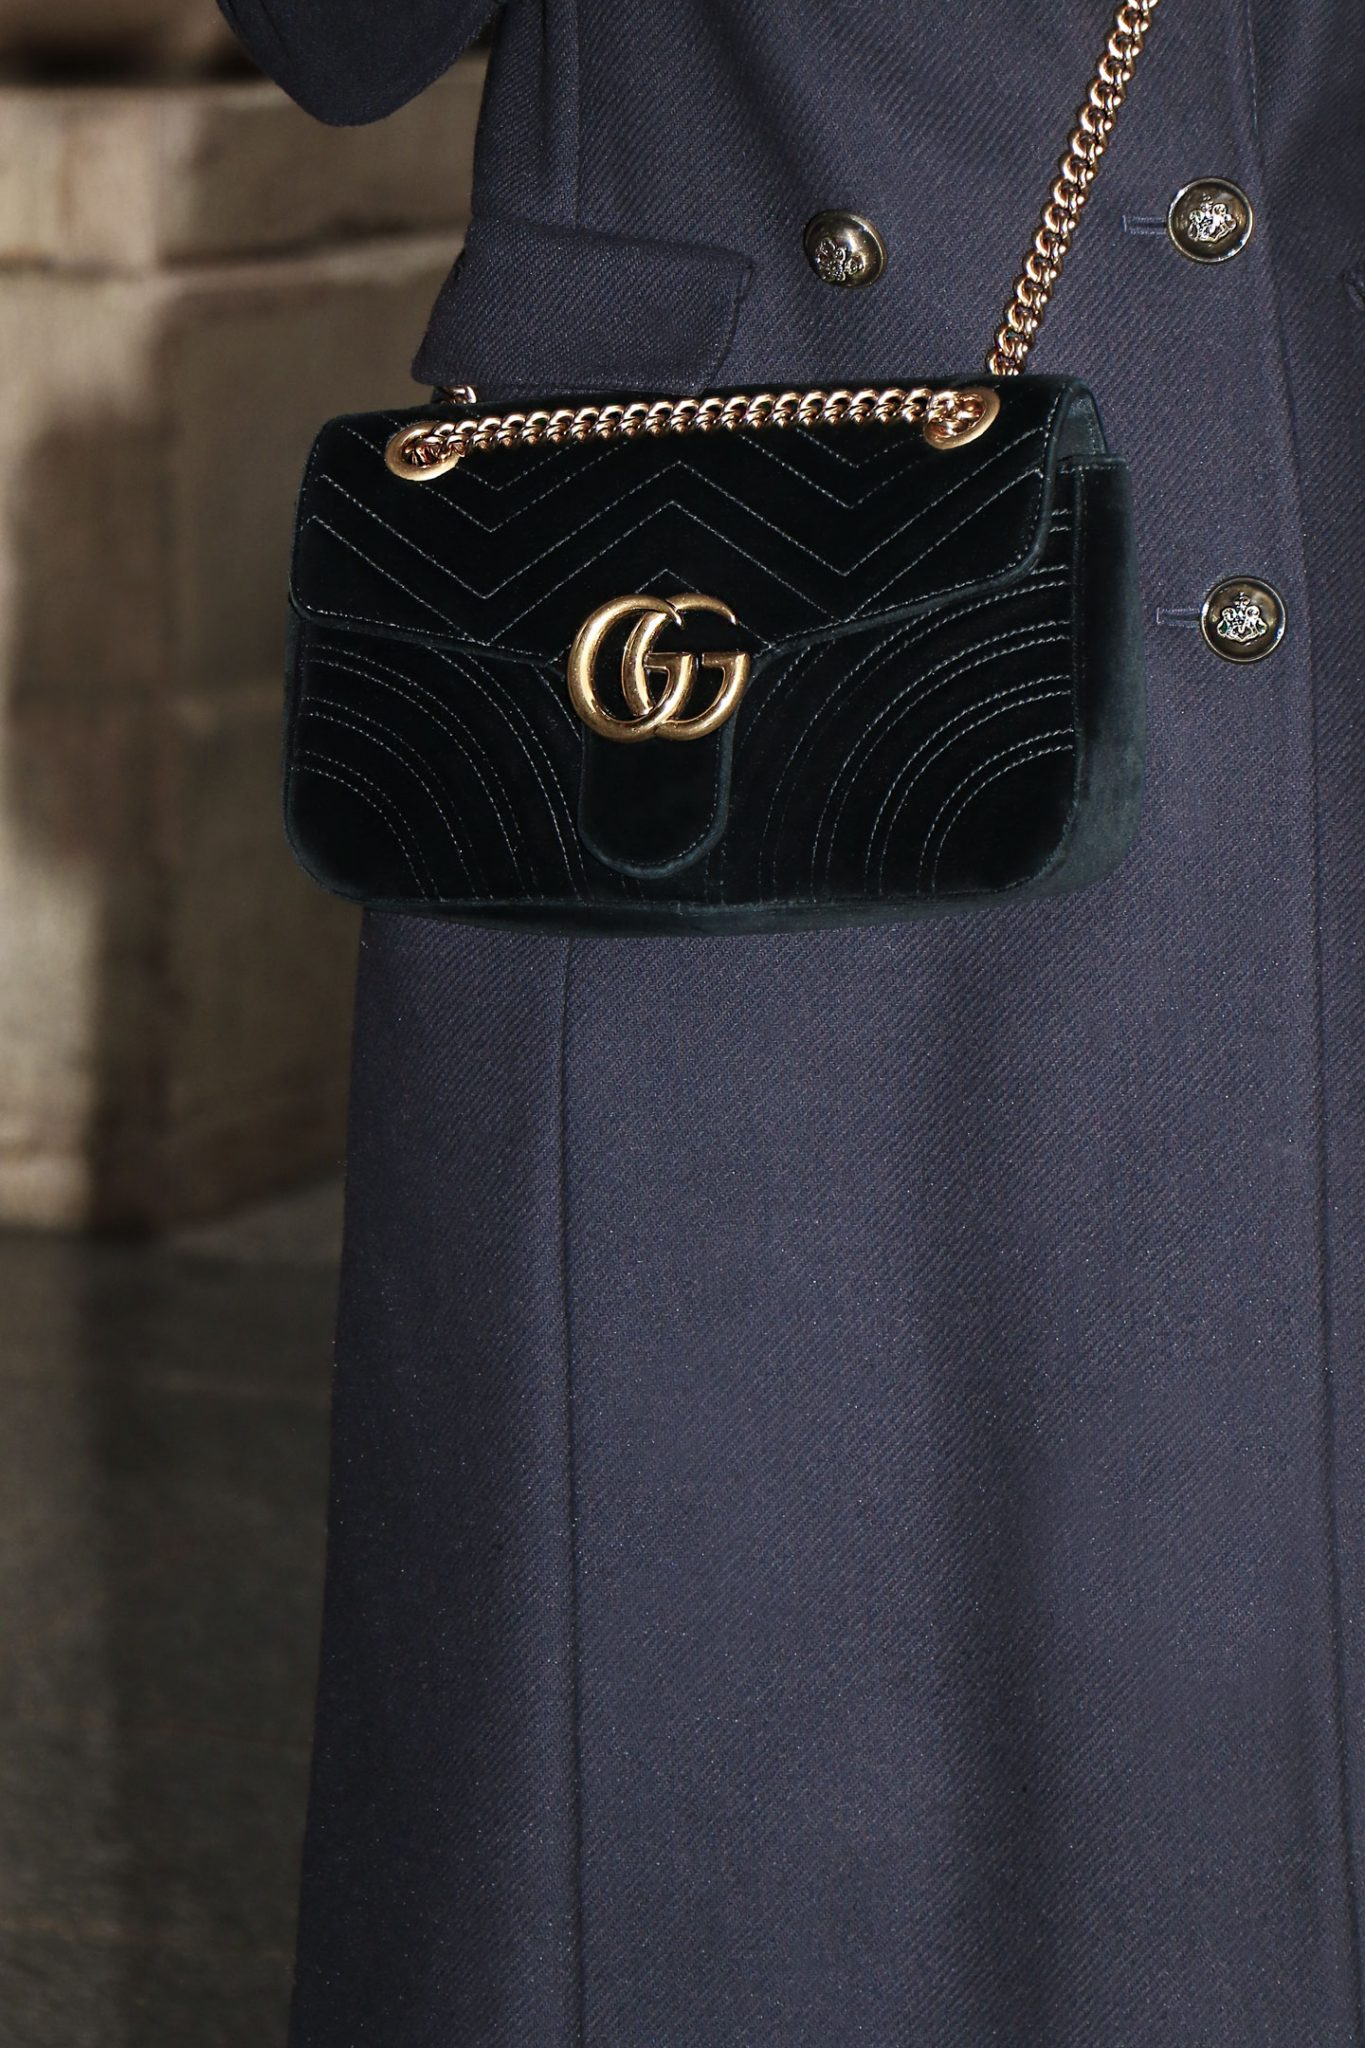 French Photographer Fashion Photography GG Marmont GUCCI Bag